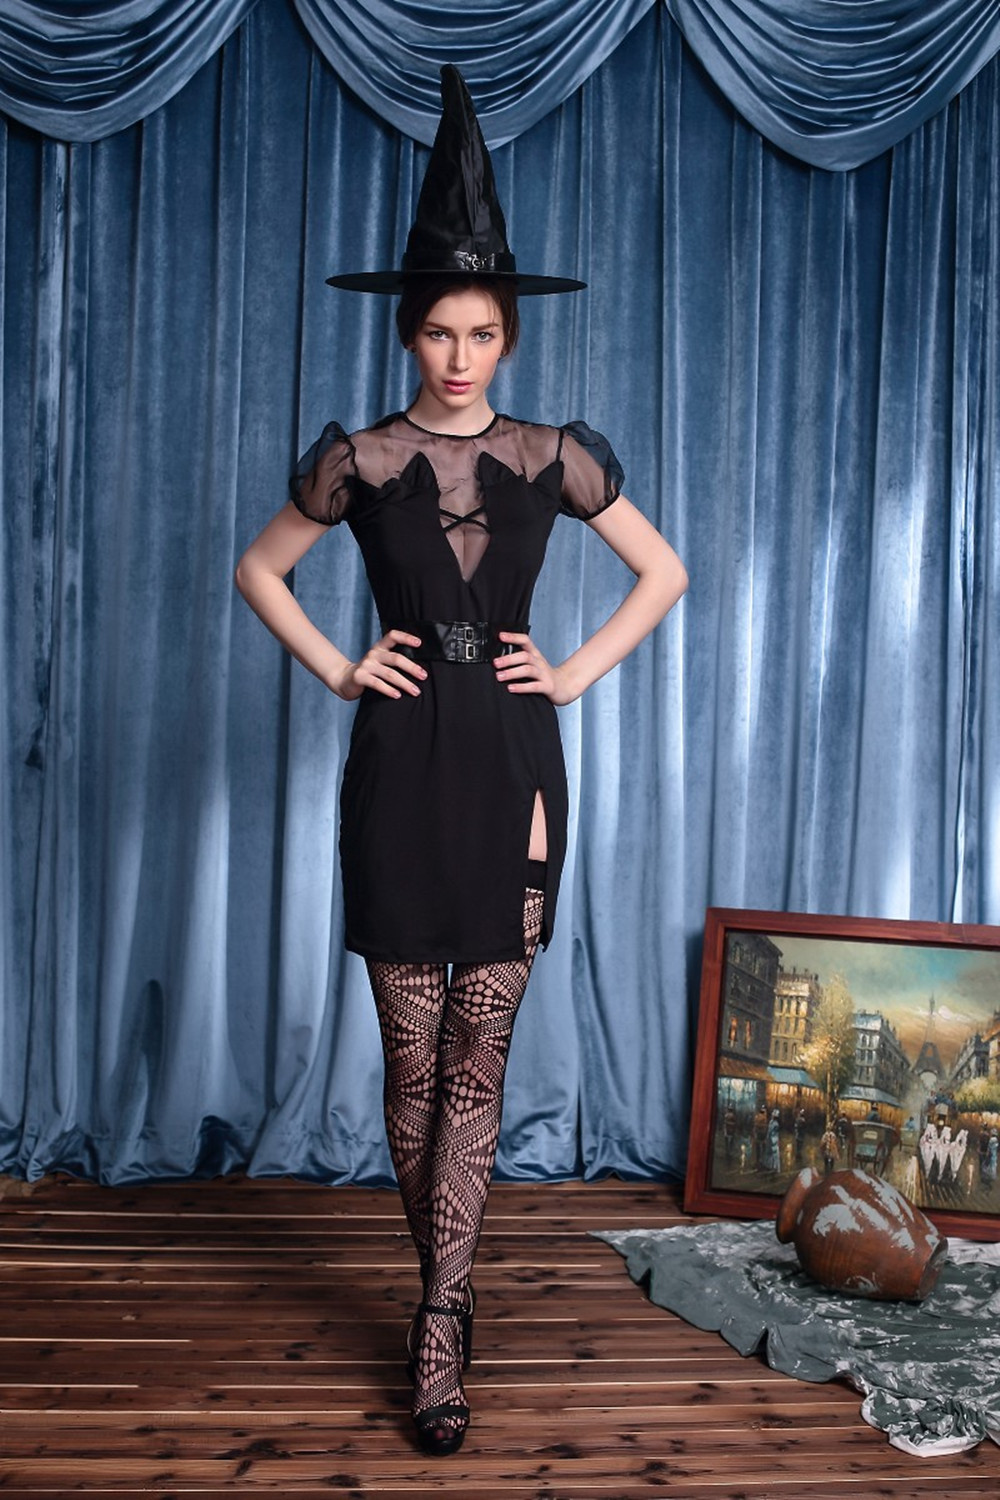 d964e494985 Devil Witch Woman Costumes for Sale Sexy Witch Costume For Halloween ...